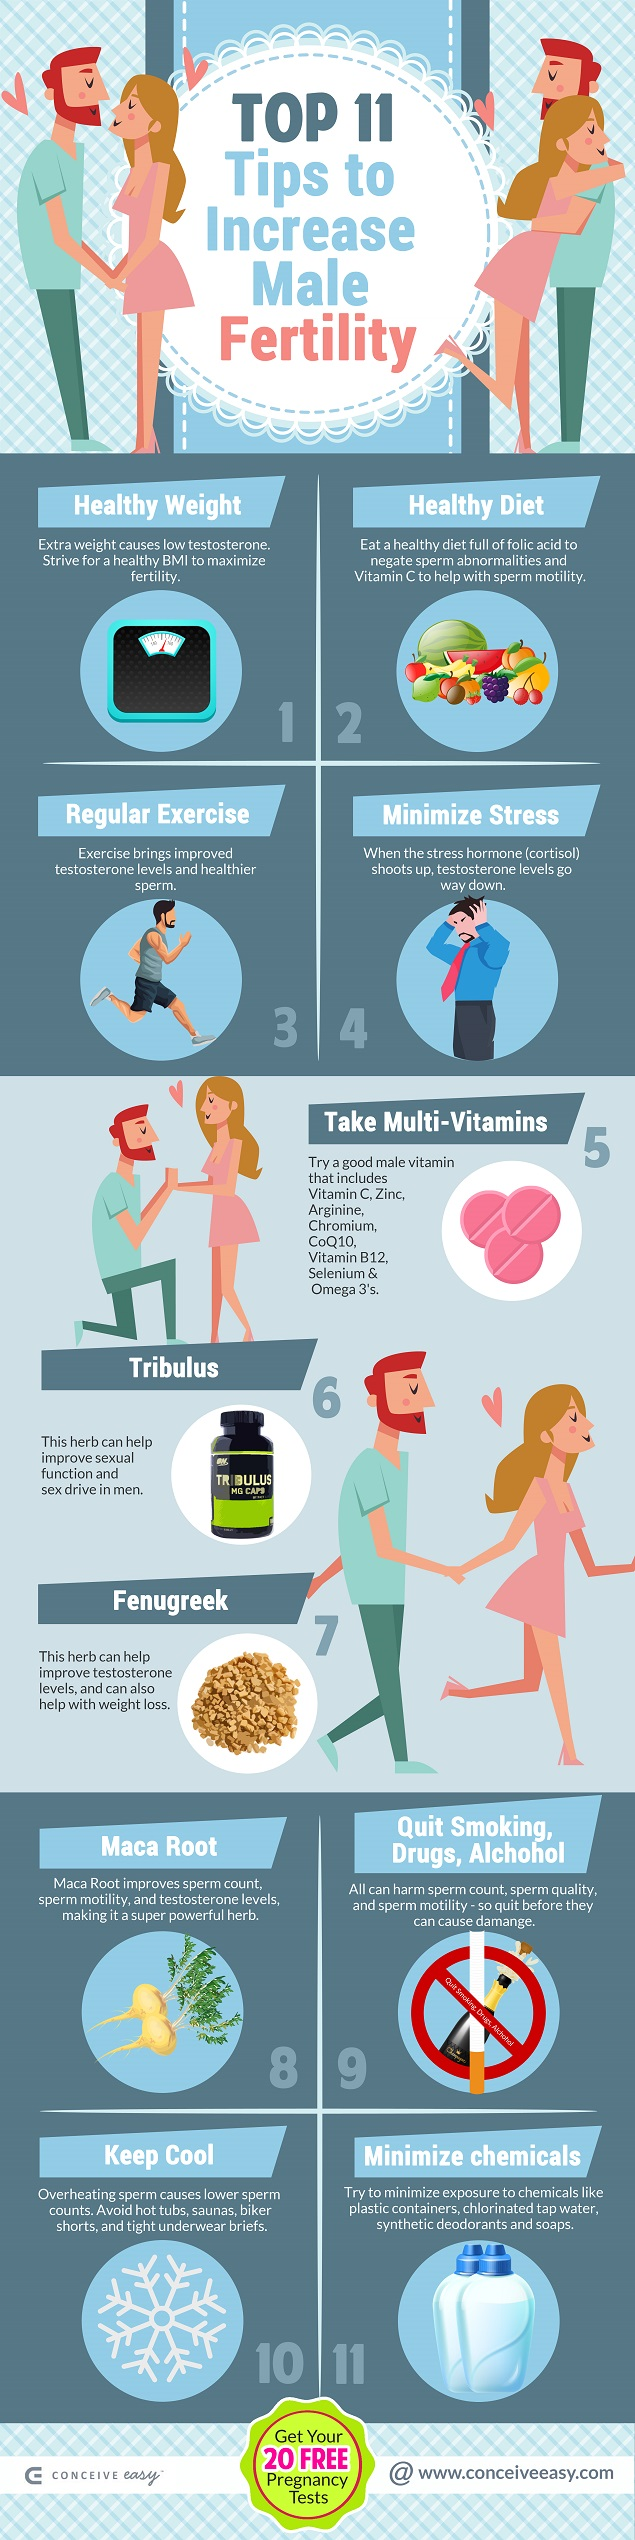 Top 11 Tips to Increase Male Fertility Infographic